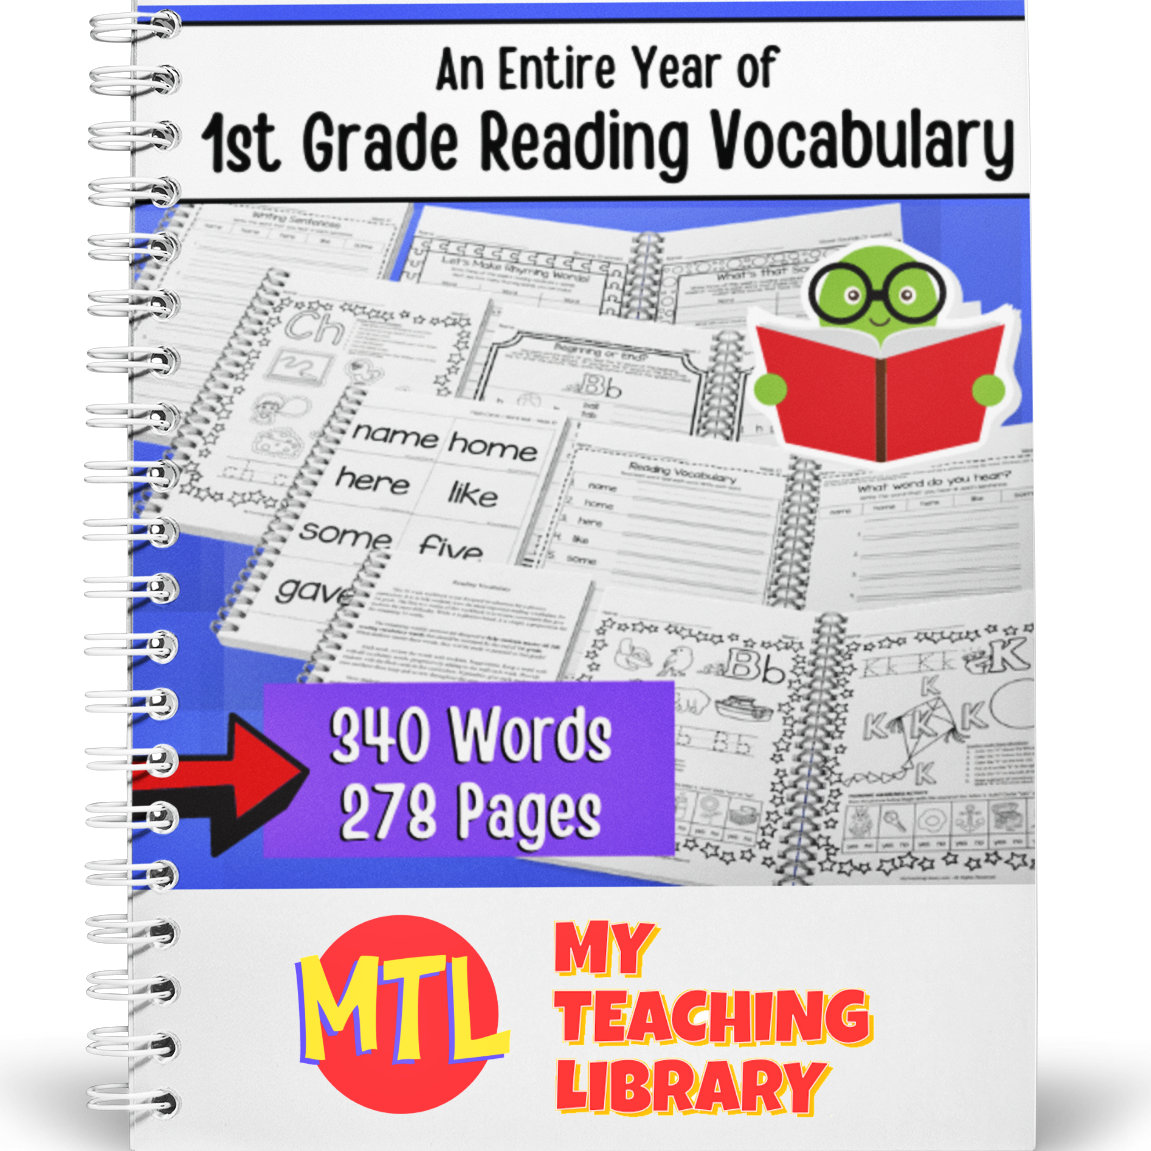 hight resolution of 1st Grade Reading Vocabulary   Complete - My Teaching Library   CHSH-Teach  LLC